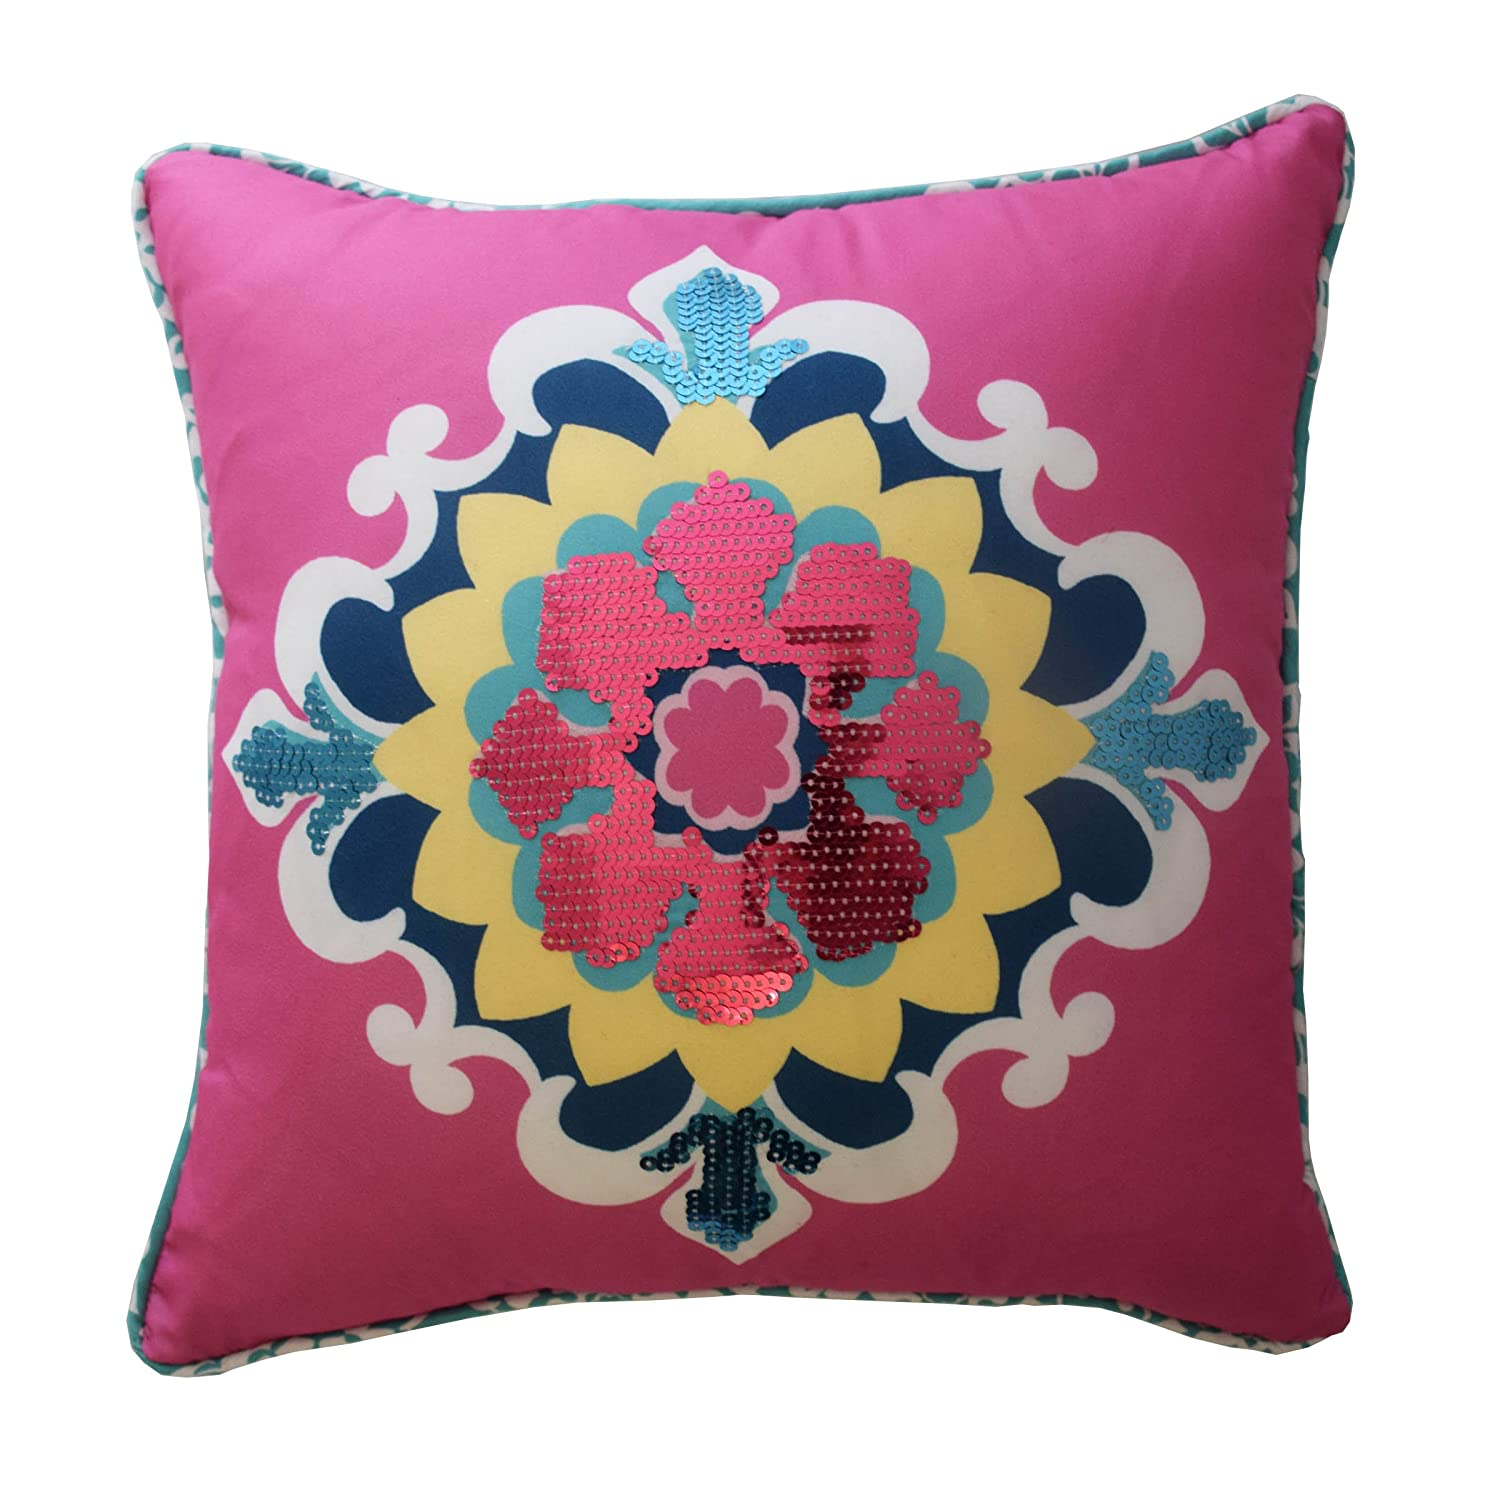 Waverly Kids 16438015X015MUL Bollywood 15-Inch by 15-inch Sequin Decorative Accessory Pillow, Multi Ellery Homestyles